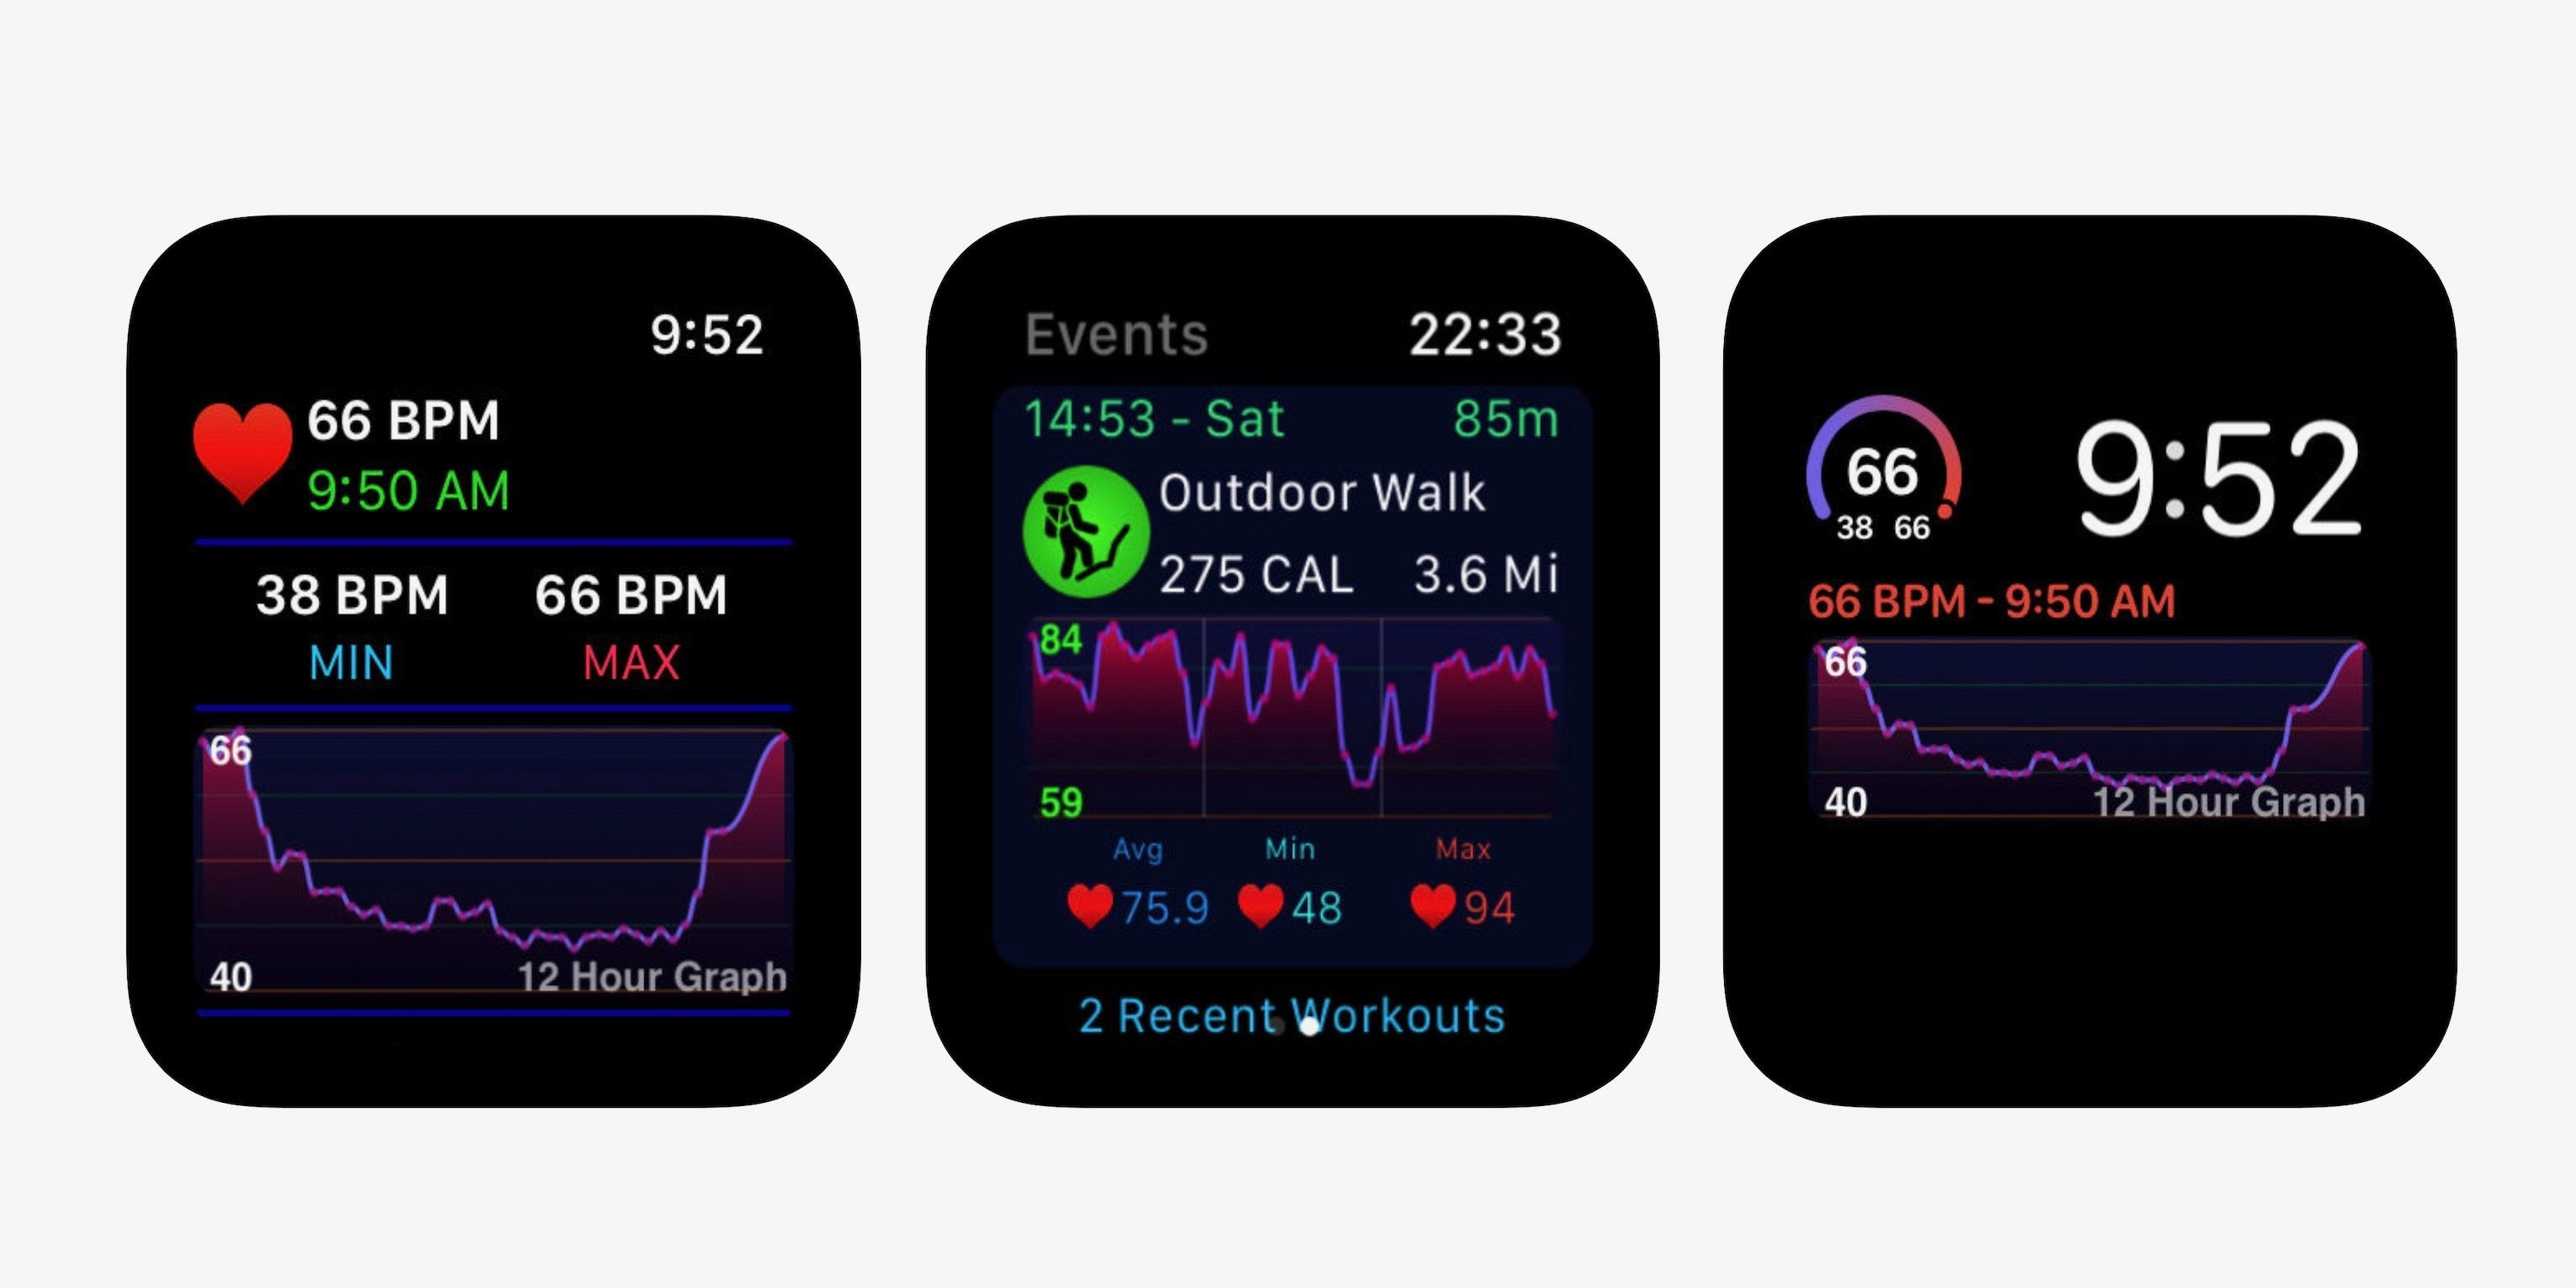 Heart Analyzer for Apple Watch adds live heart rate